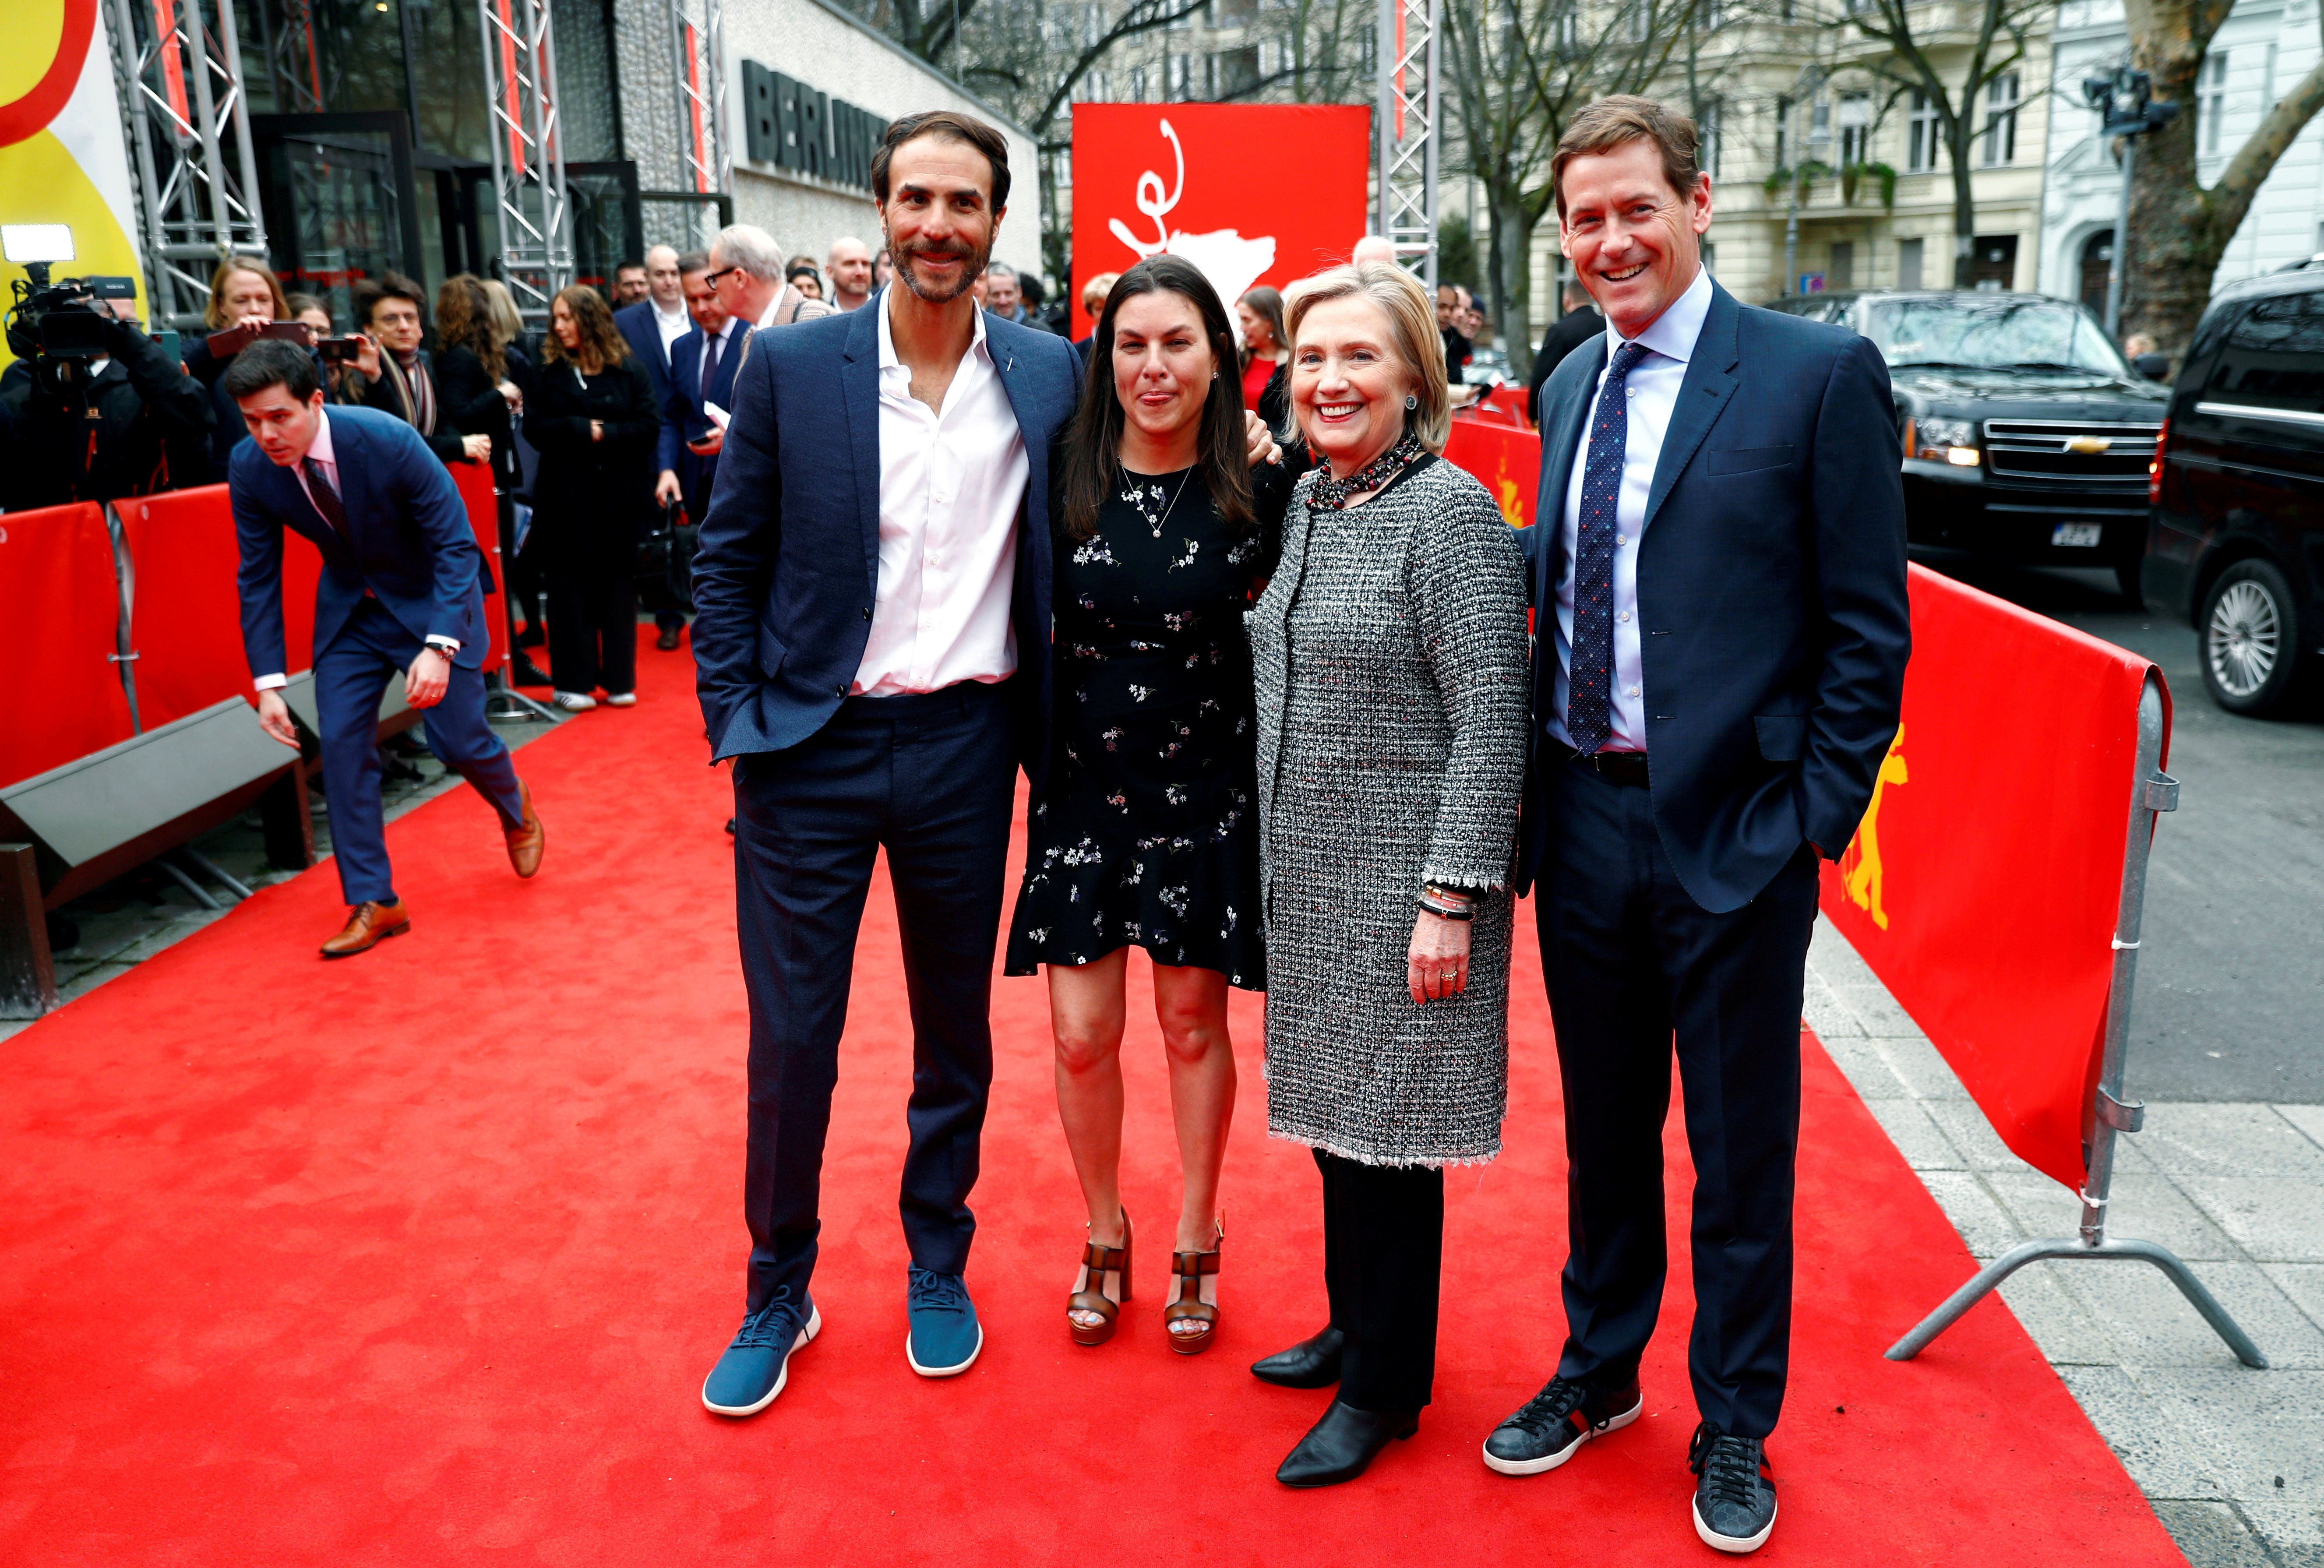 Director Nanette Burstein, Former U.S. Secretary of State Hillary Clinton and executive producers Ben Silverman and Howard Owens arrive for the screening of the movie ''Hillary'' during the 70th Berlinale International Film Festival in Berlin, Germany, Feb. 24, 2020. REUTERS/Fabrizio Bensch